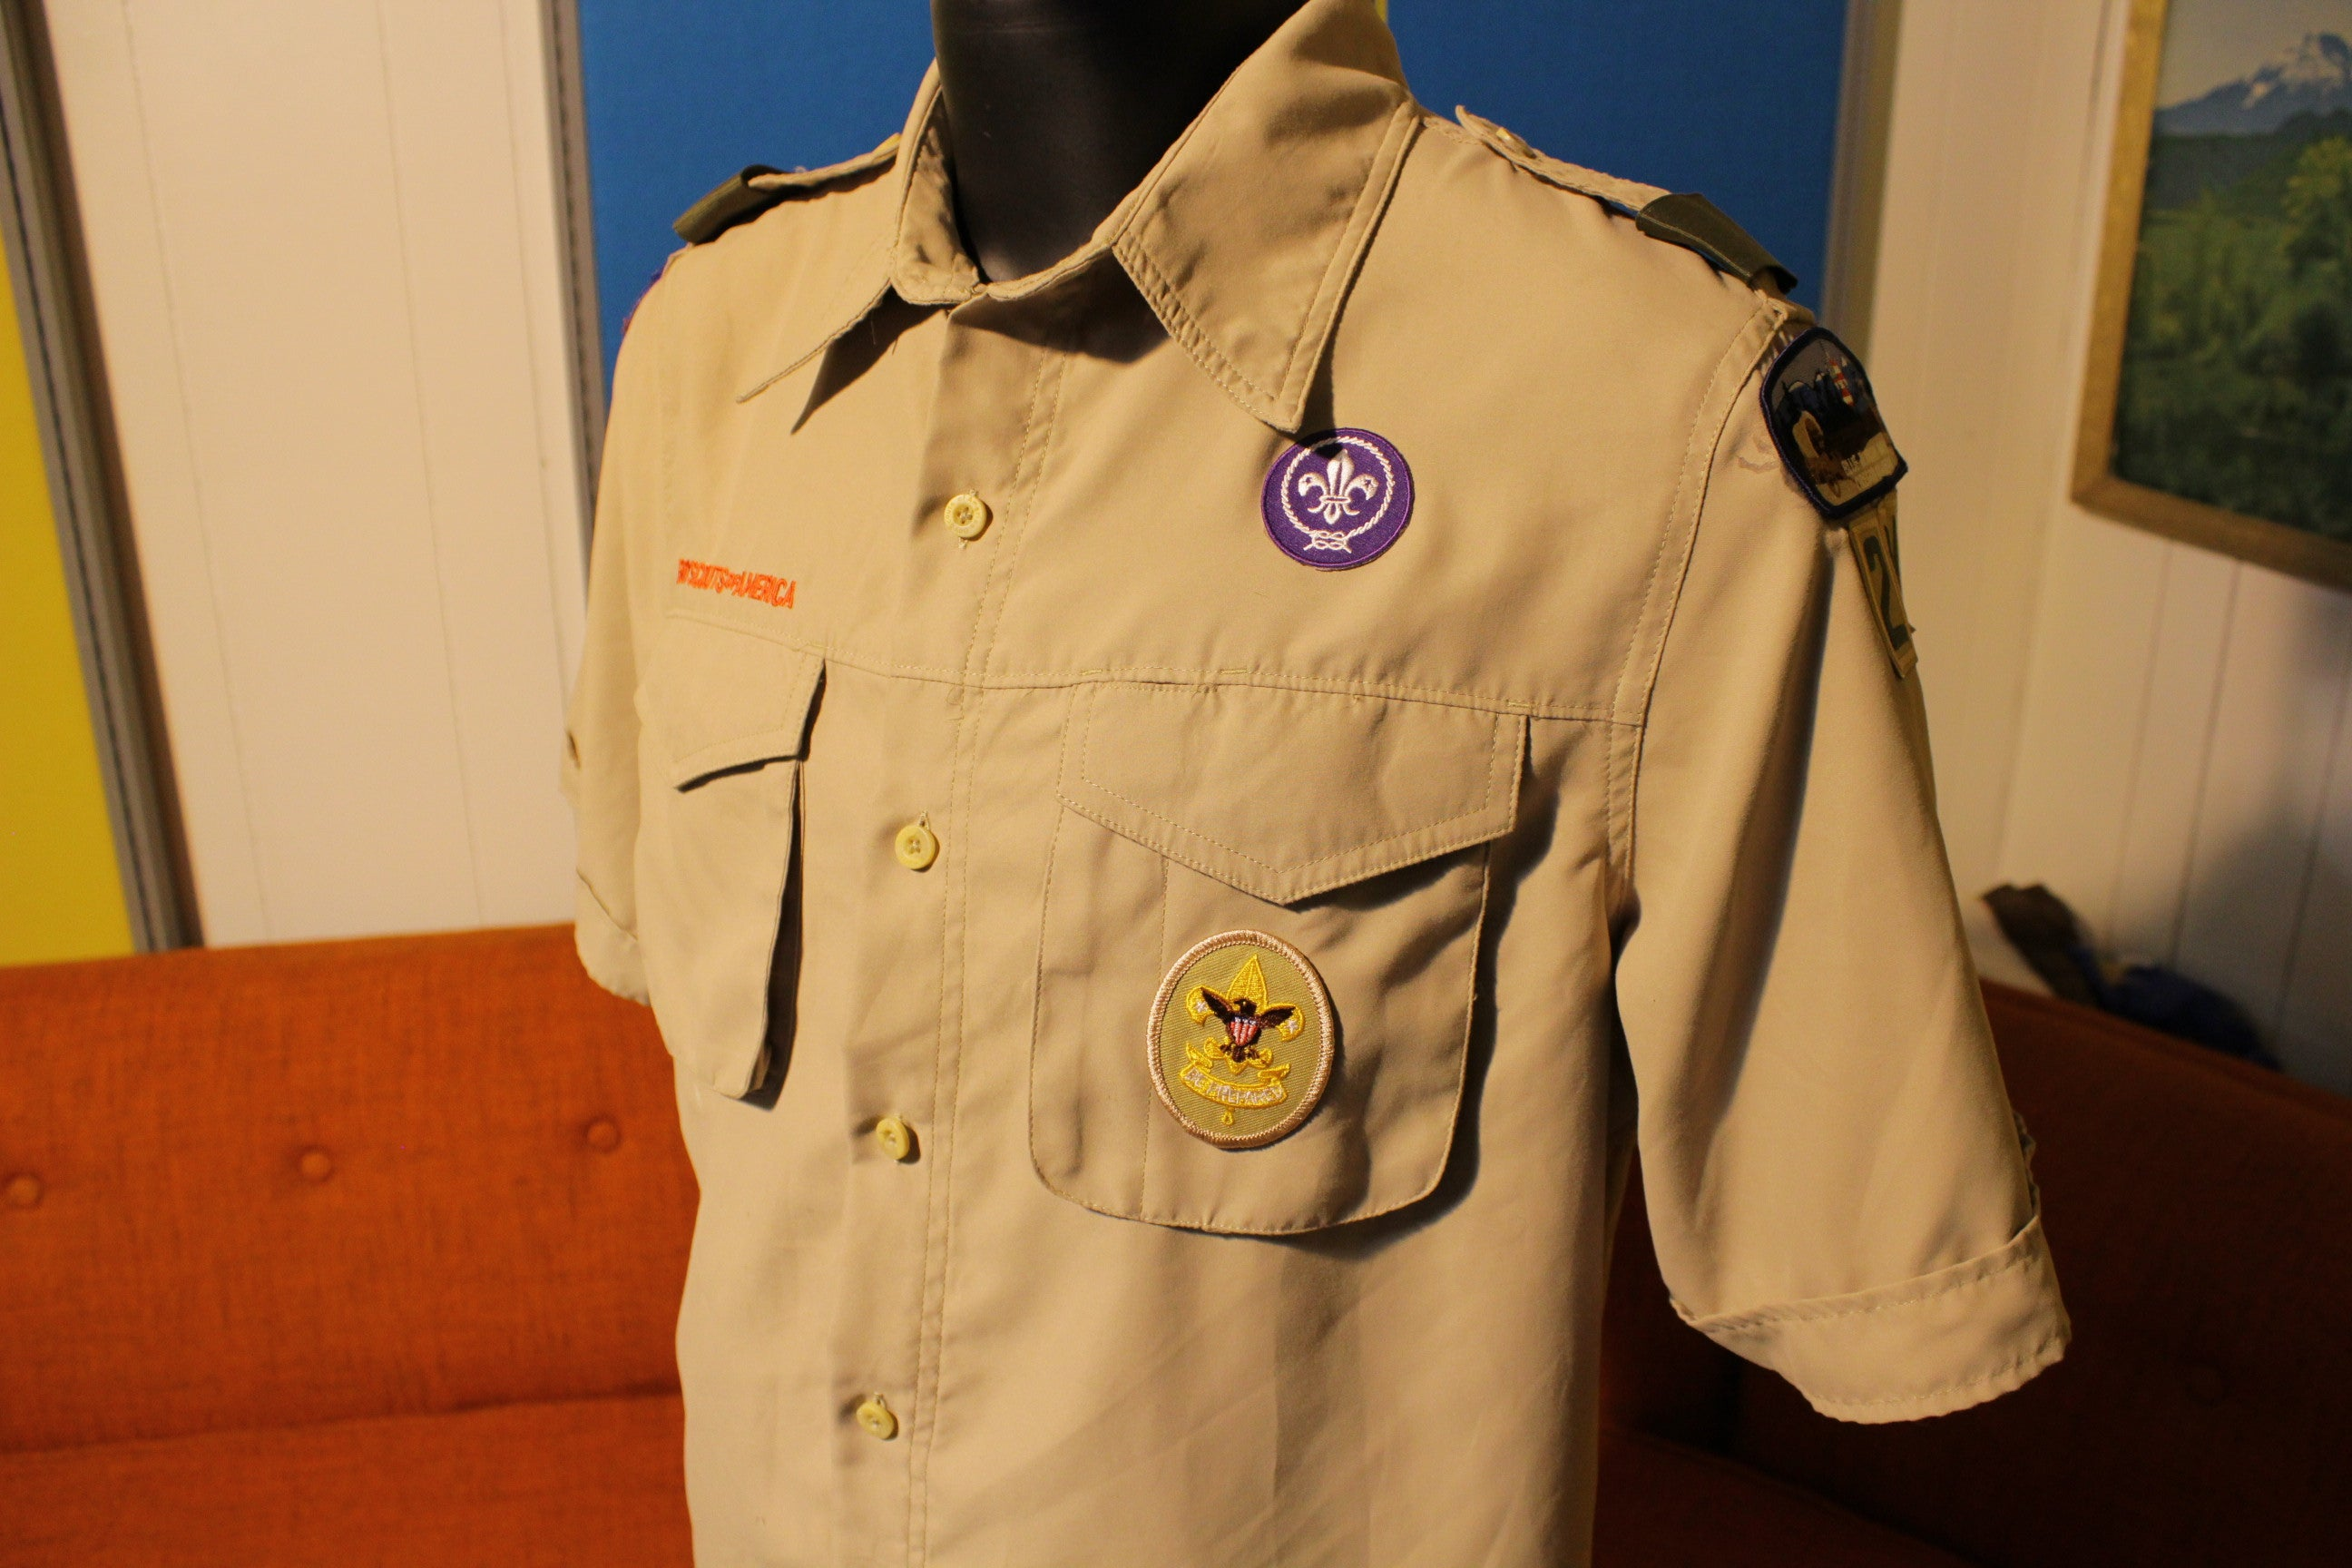 BOY SCOUTS Of America UNIFORM Shirt #214 VENTED Polyester Adult Mens Patches